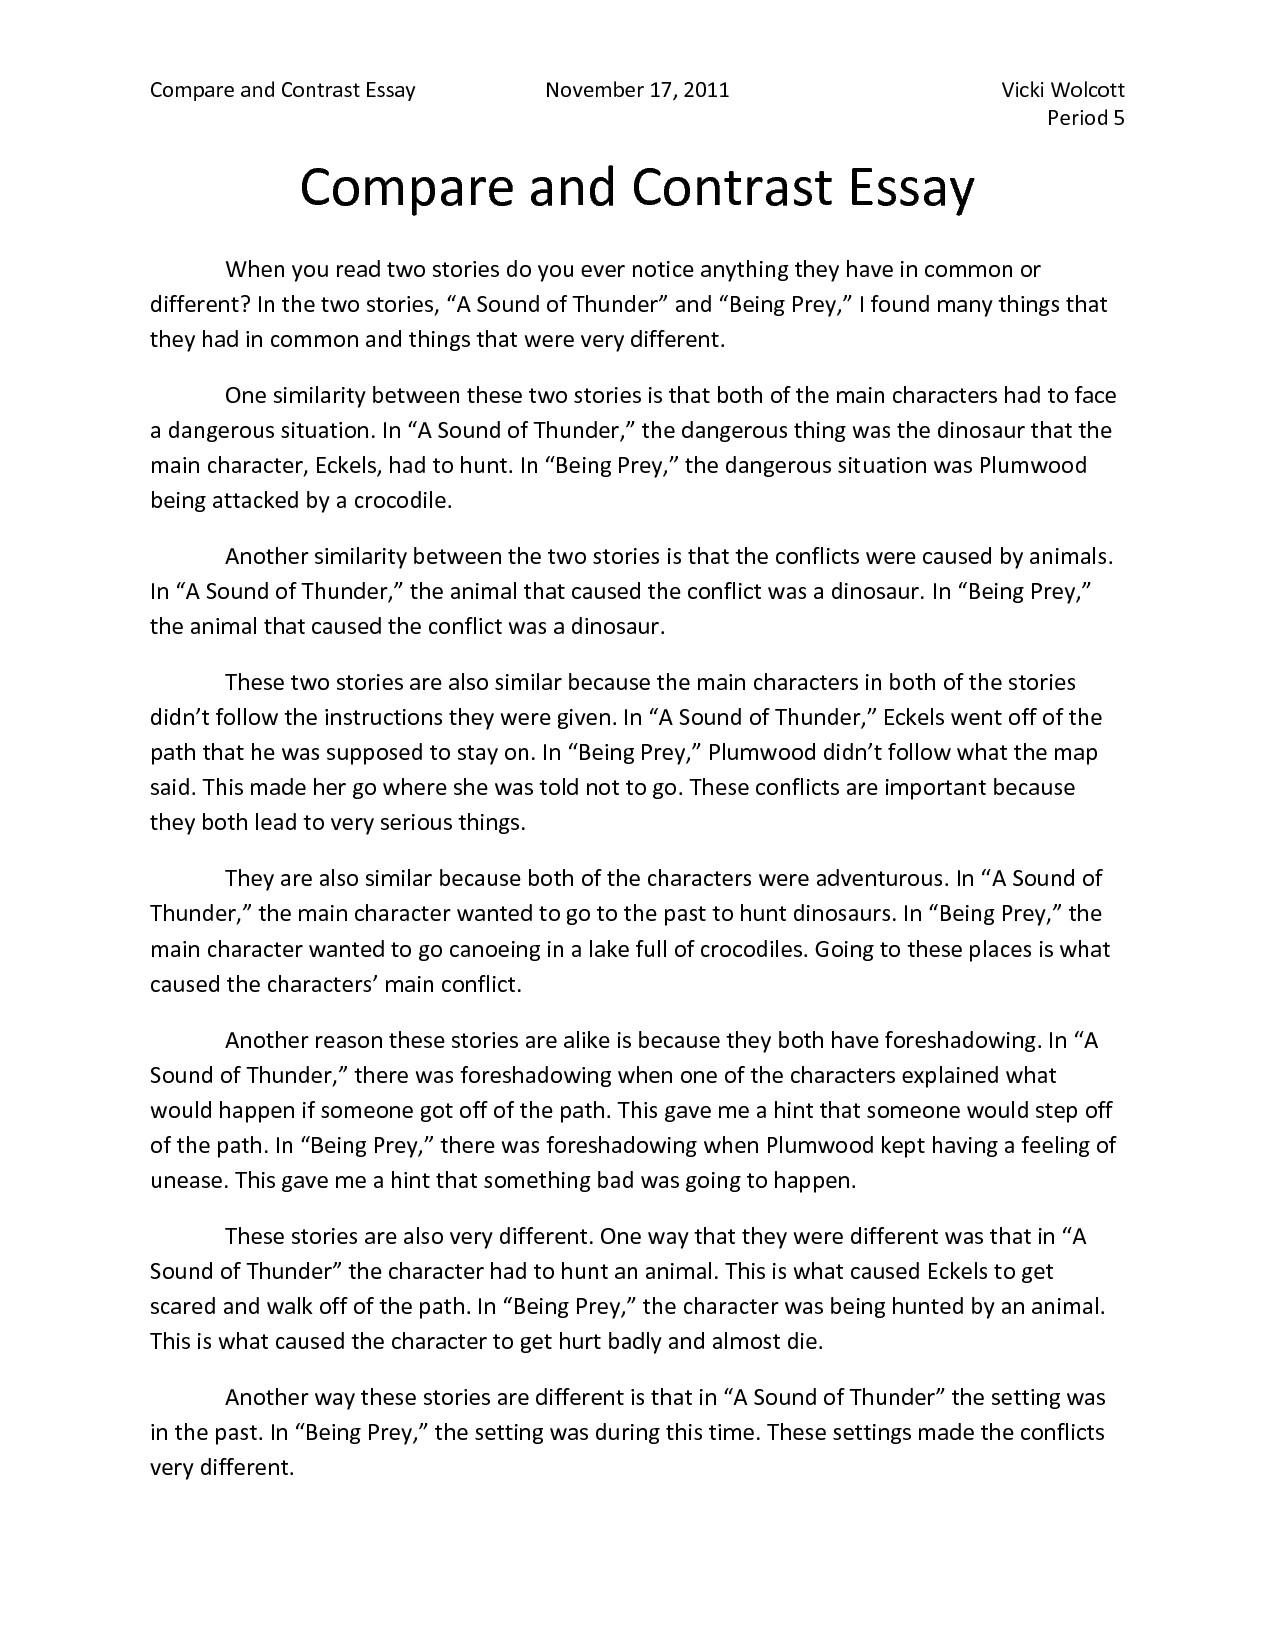 006 Comparing And Contrasting Essay Example Satire Examples Of Comparison Contrast Essays Com How To Write Outstanding A Compare Outline Powerpoint Introduction Full